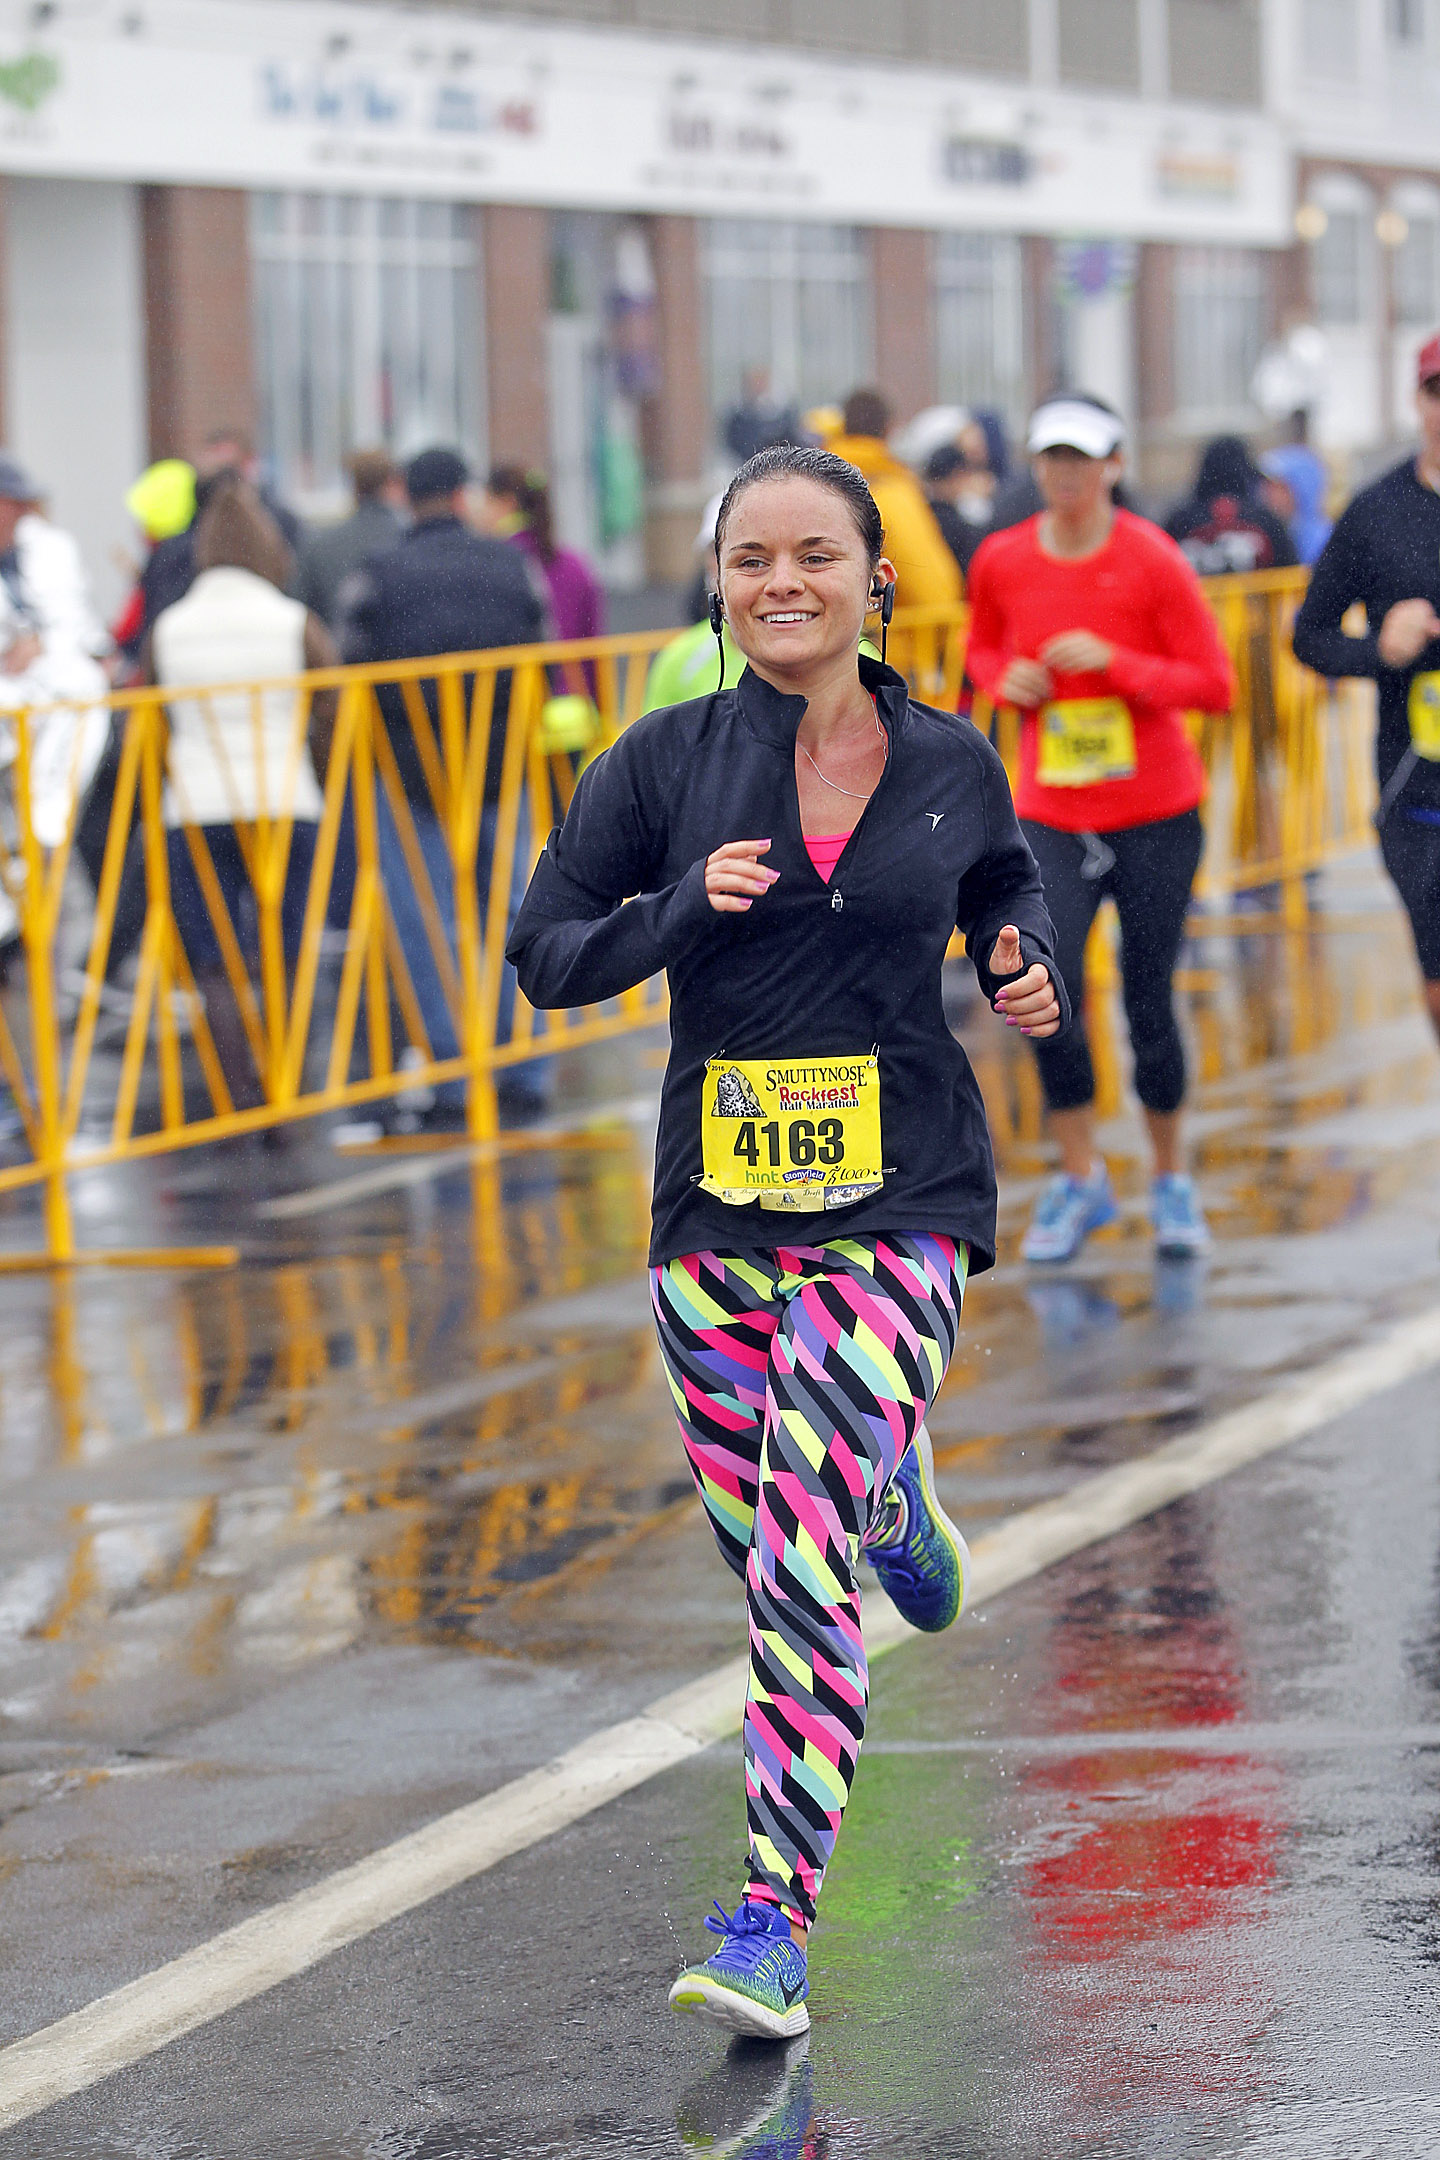 Just before the finish line of my first 13.1!